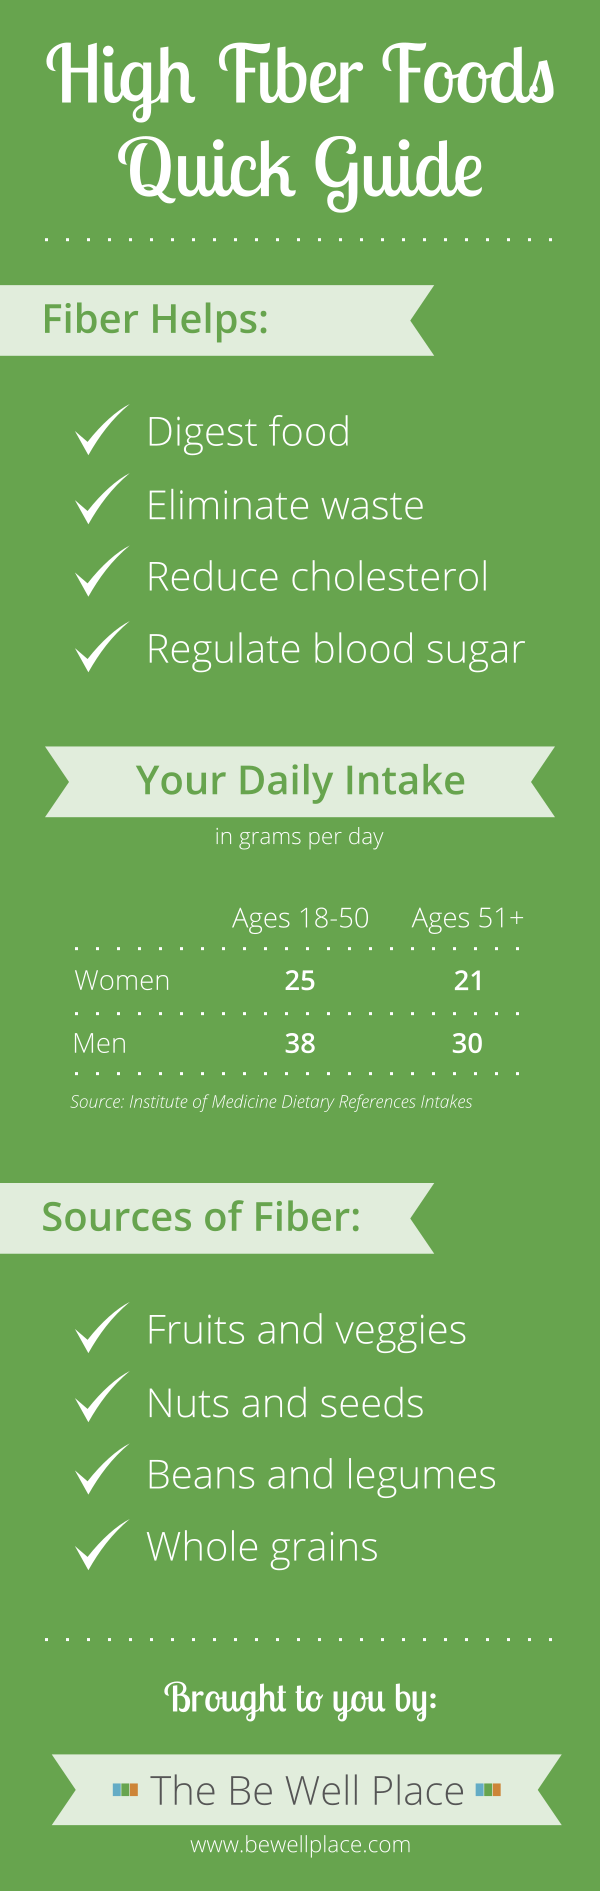 5 Ways to Sneak High Fiber Foods Into Your Diet - Infographic - High Fiber Foods Quick Guide - The Be Well Place